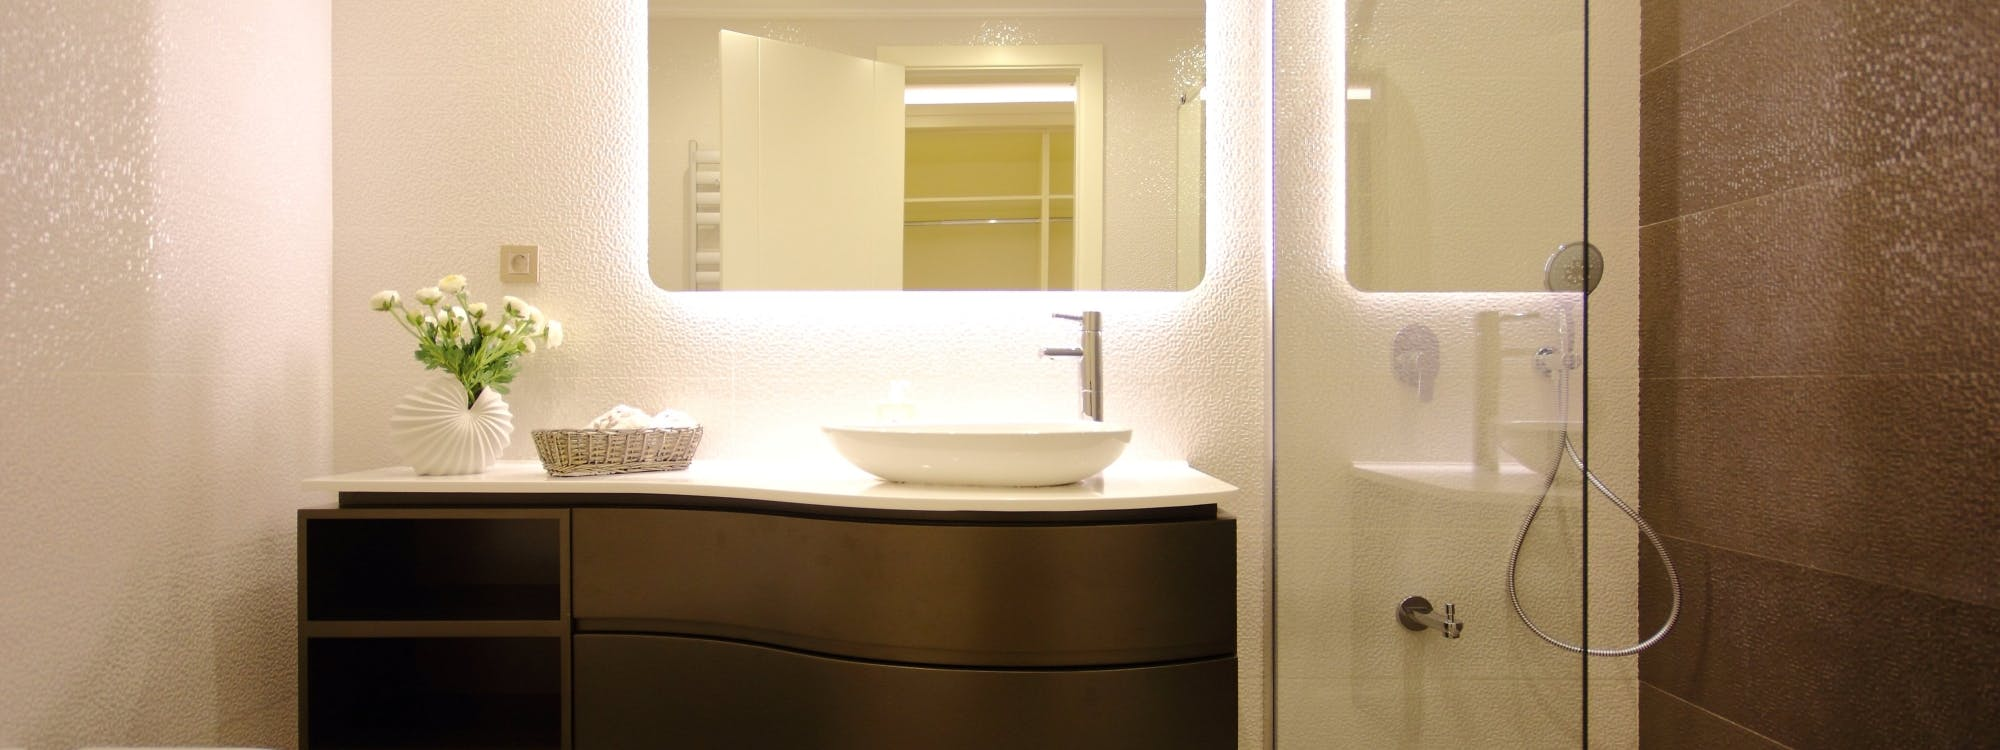 Bathroom Design and Fitted Bathroom Service | More Bathrooms